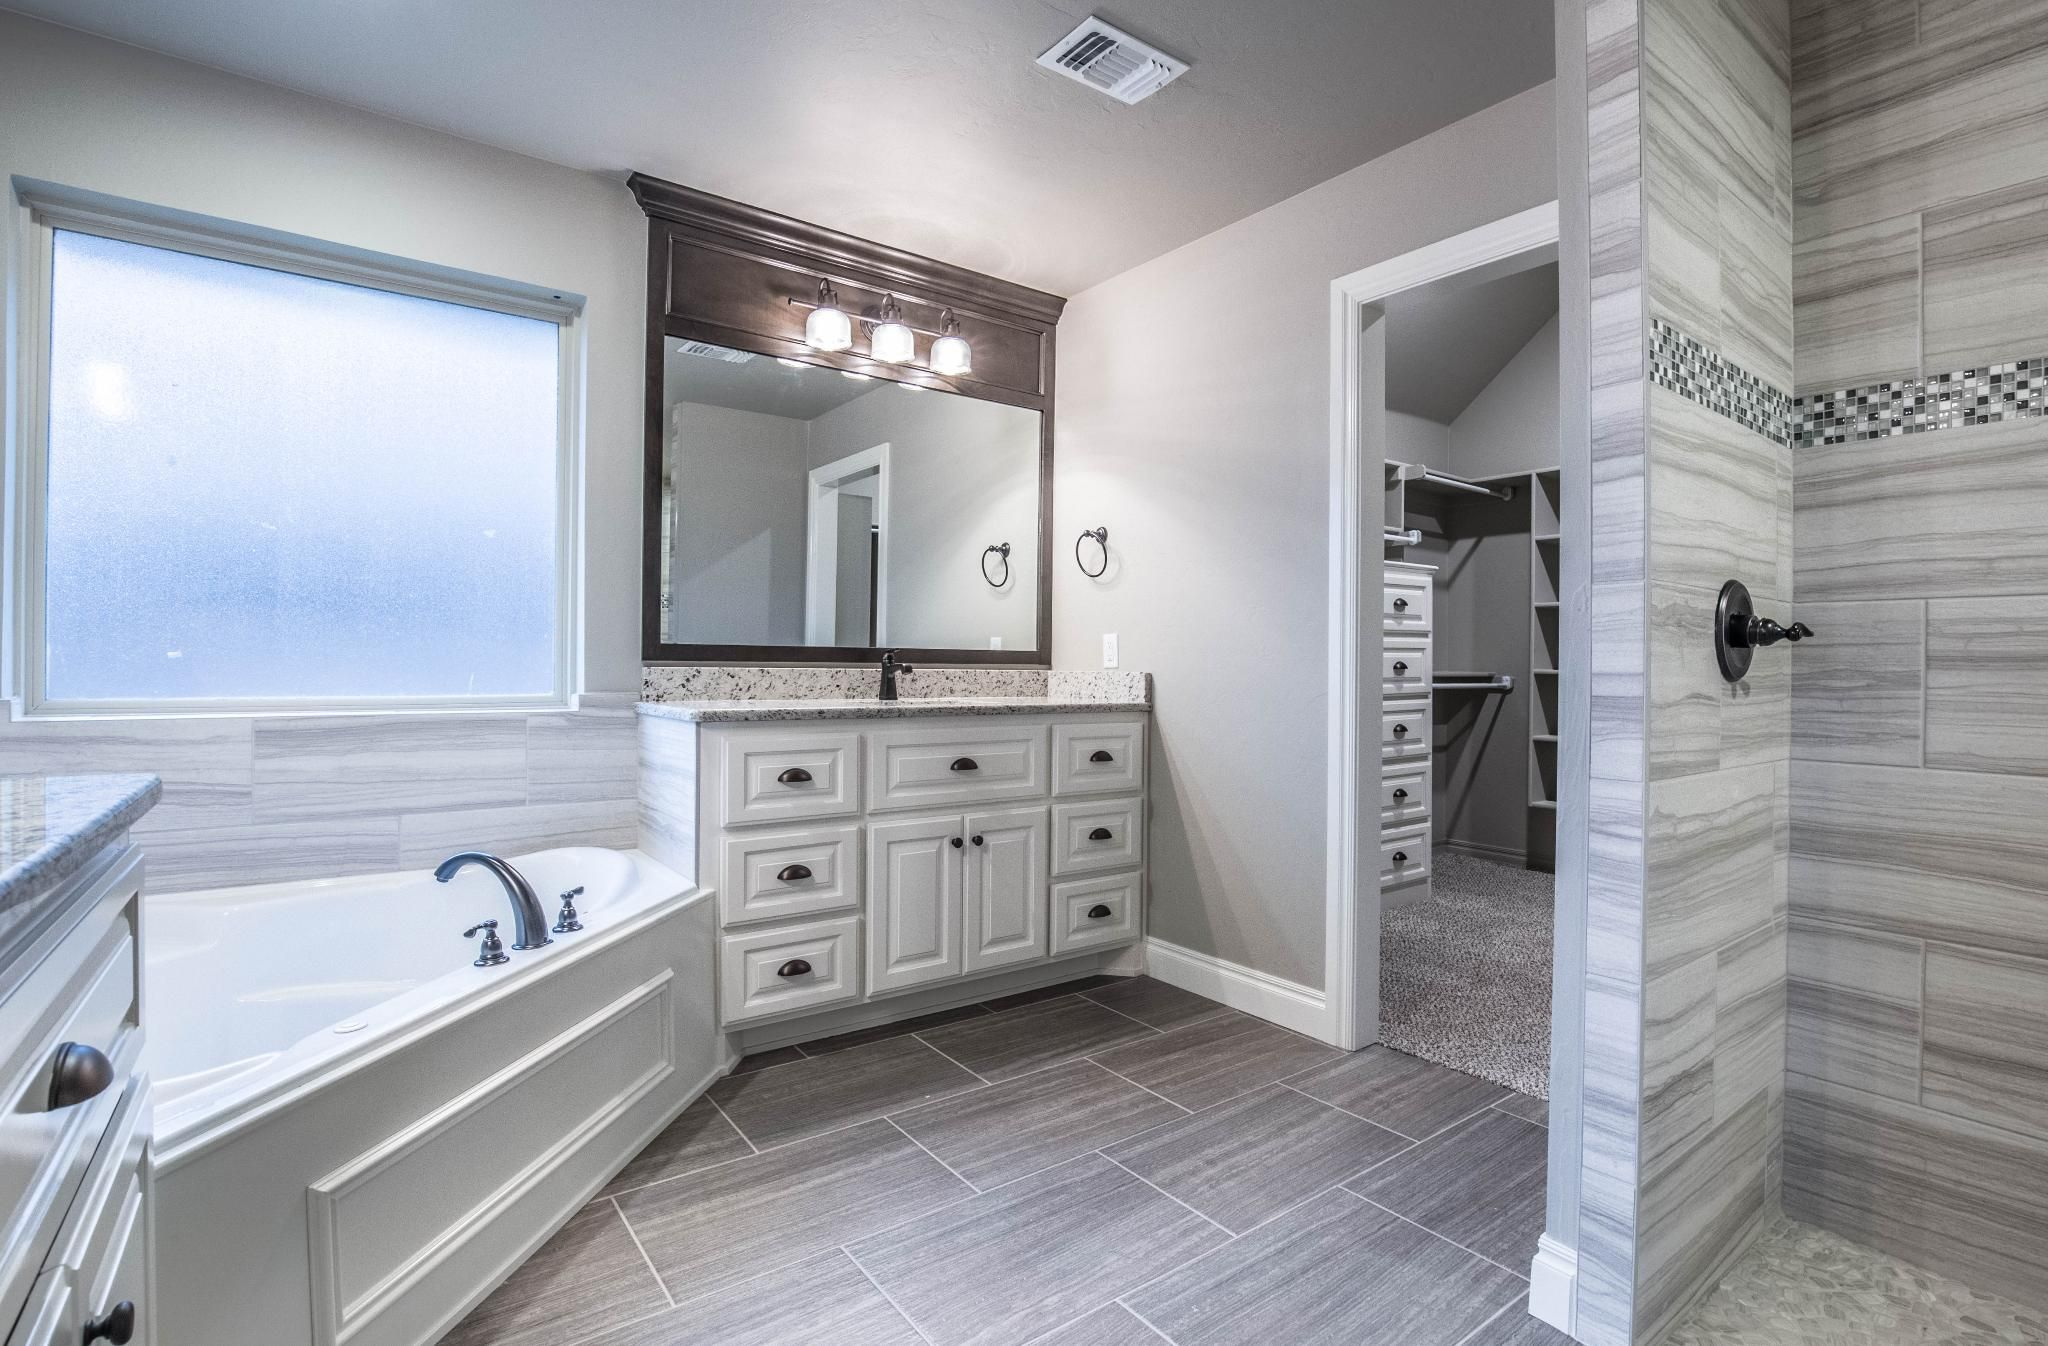 Photo gallery homes by taber new home communities new